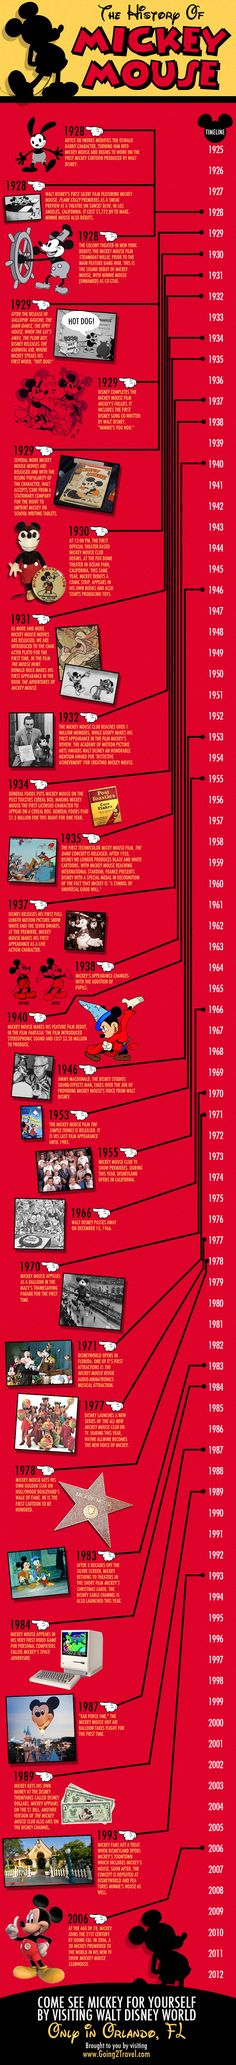 The History of Mickey Mouse Disney